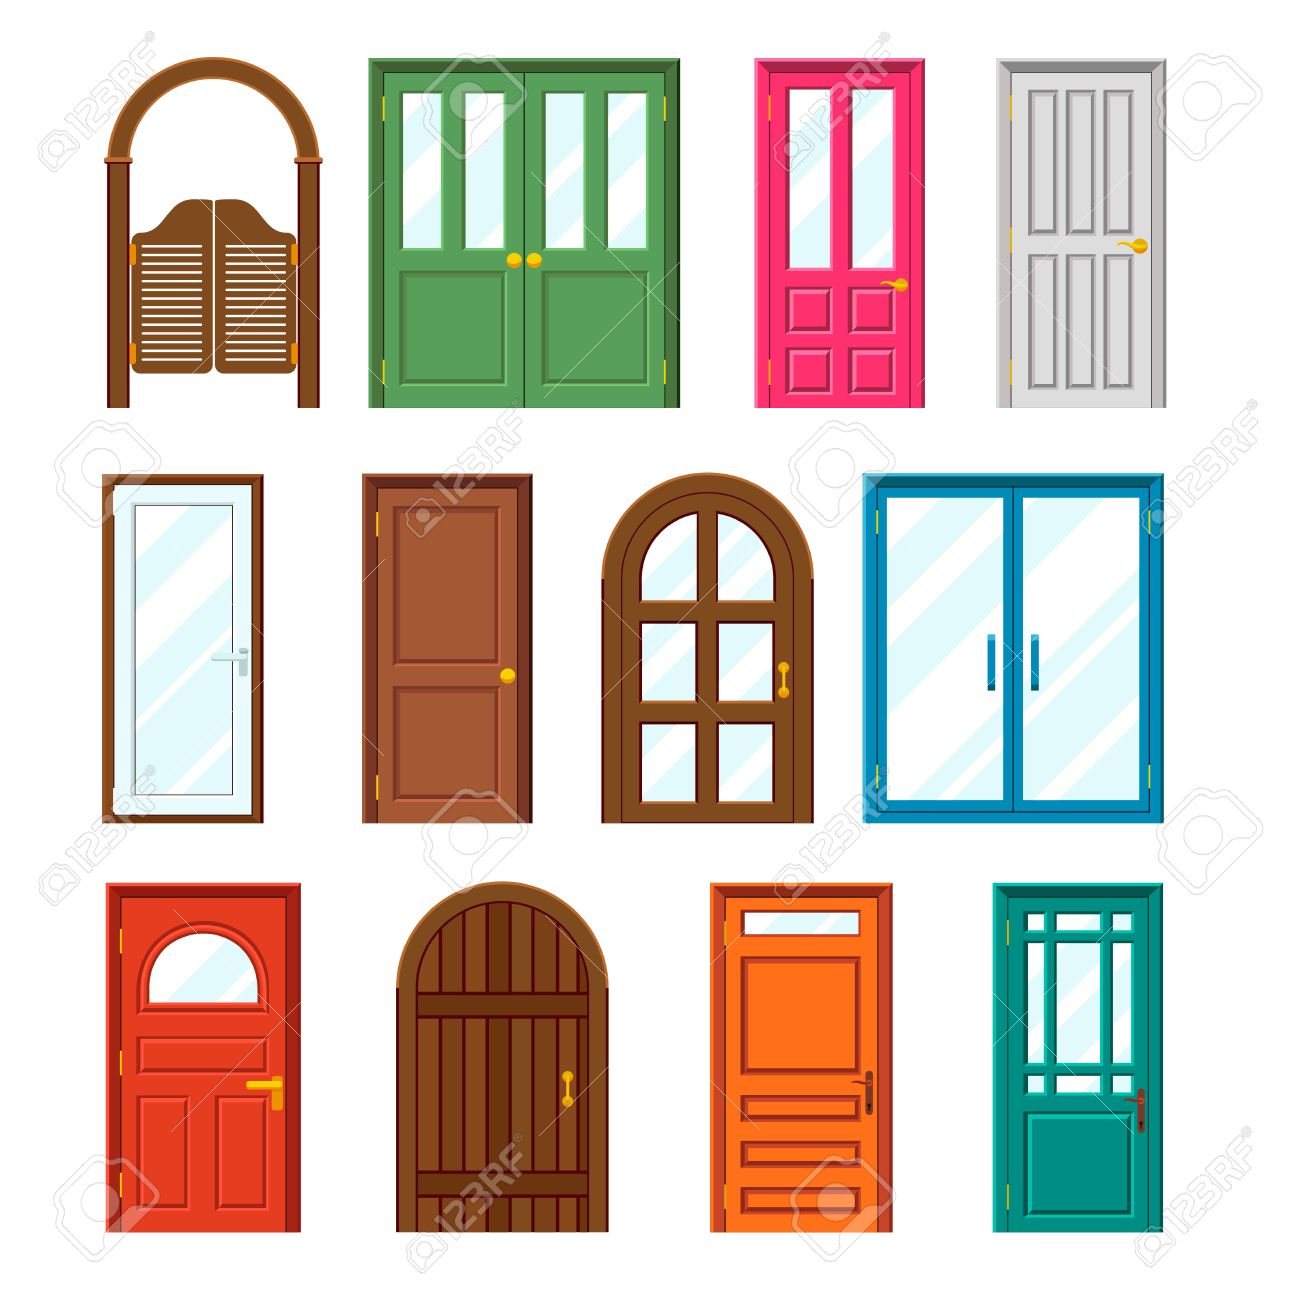 House window clipart free download best house window for Window design clipart